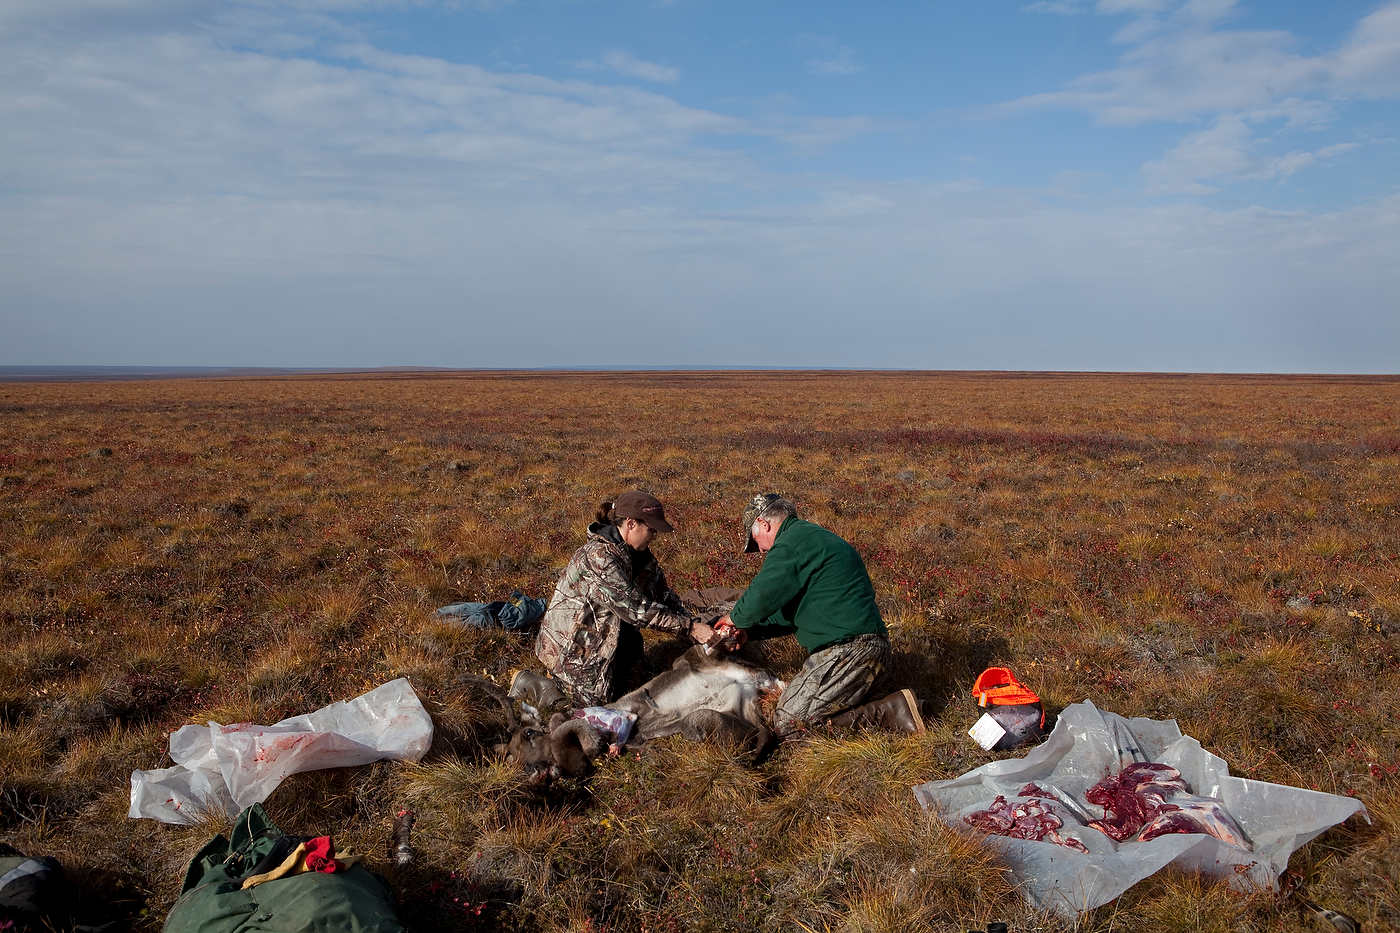 Sarah Palin and her father dress a caribou that she just shot near Kavik, north of the Arctic Circle.